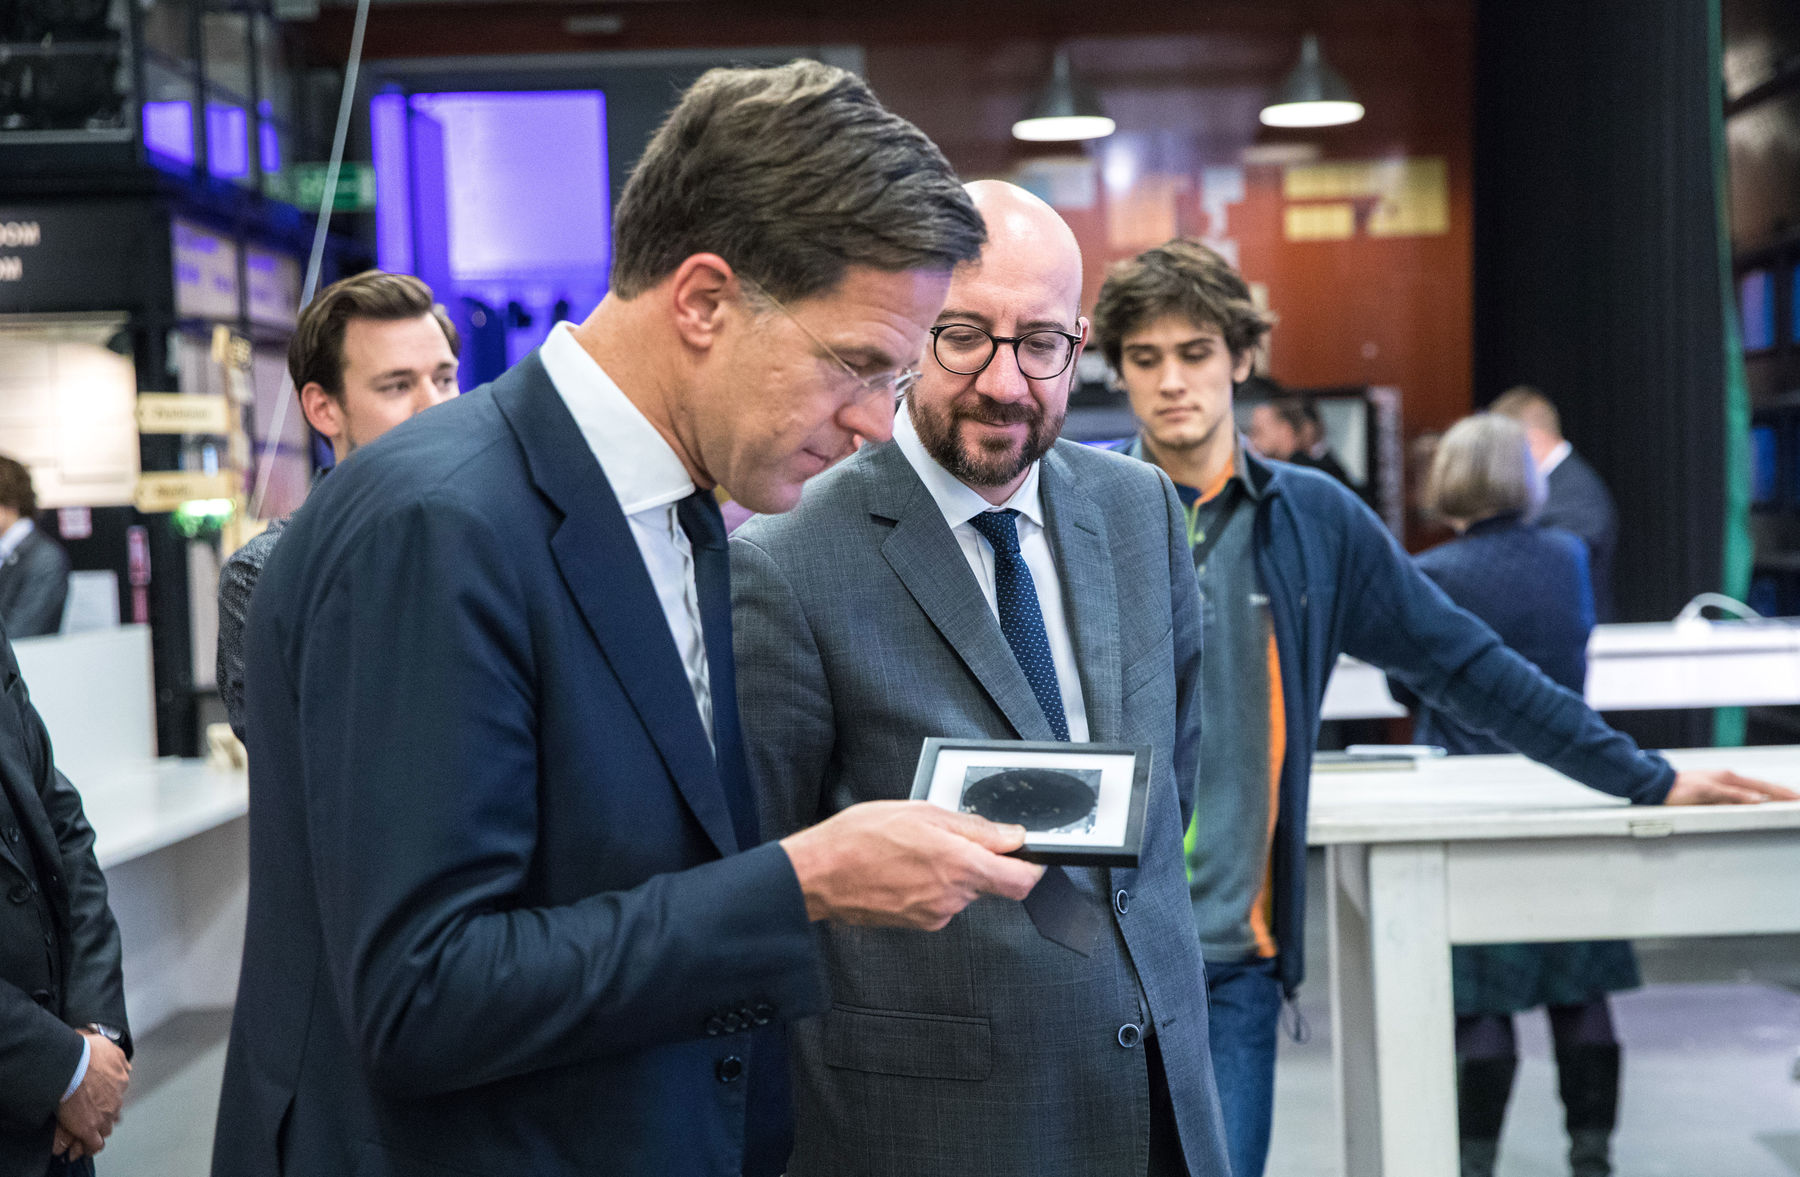 Prime Minister of the Netherlands Mark Rutte (left) and Prime Minister of Belgium Charles Michel are studying the black solar cell, which makes the solar power more competitive, particularly in the north.